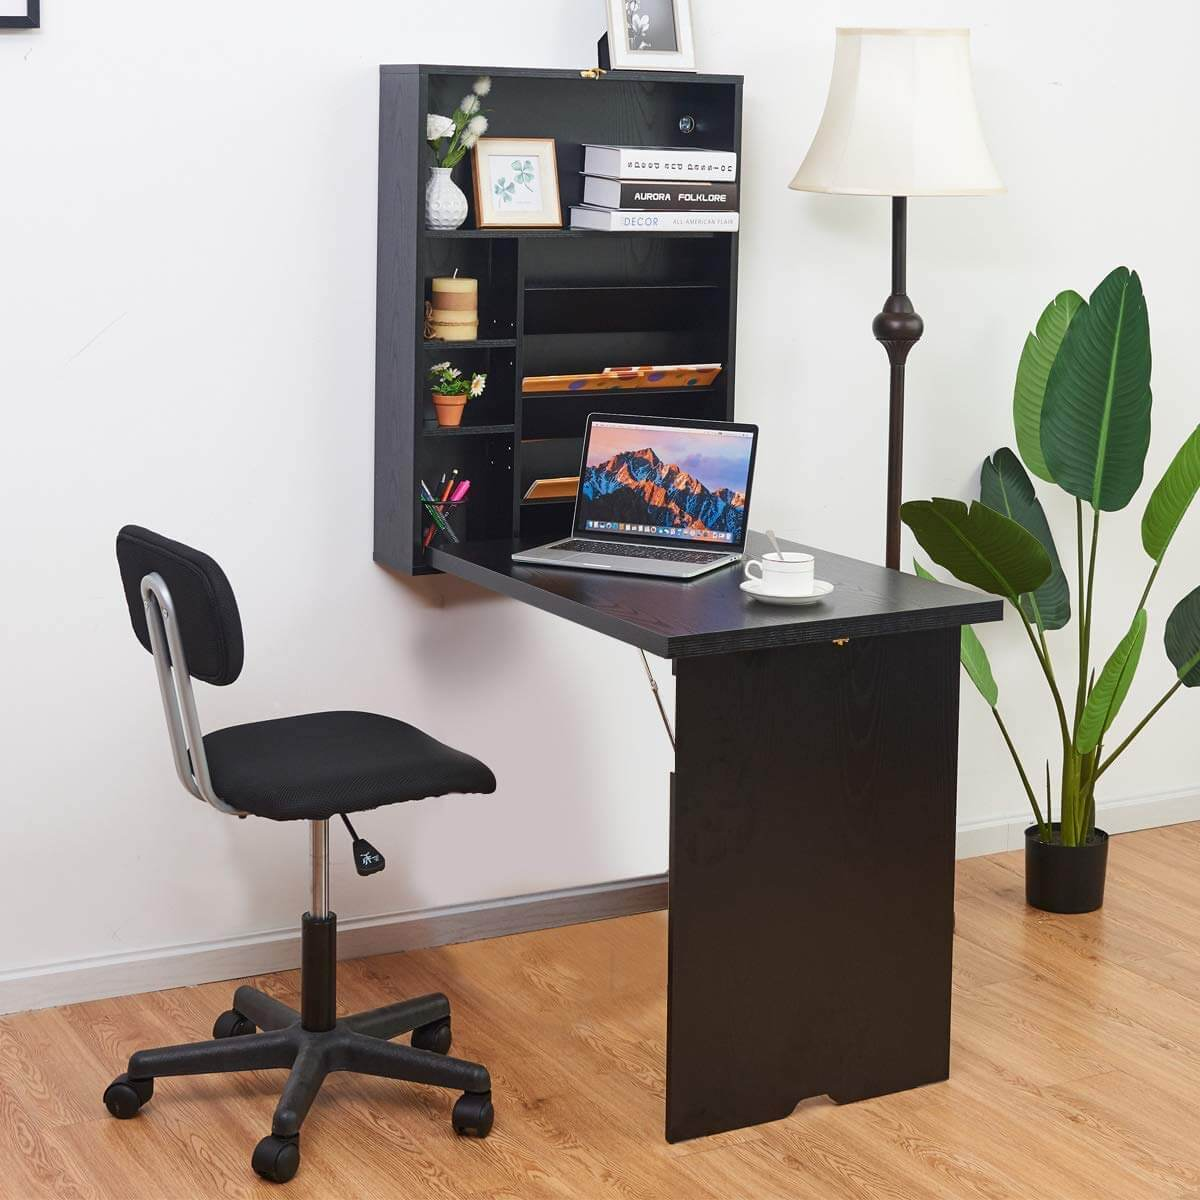 wall-mounted desks